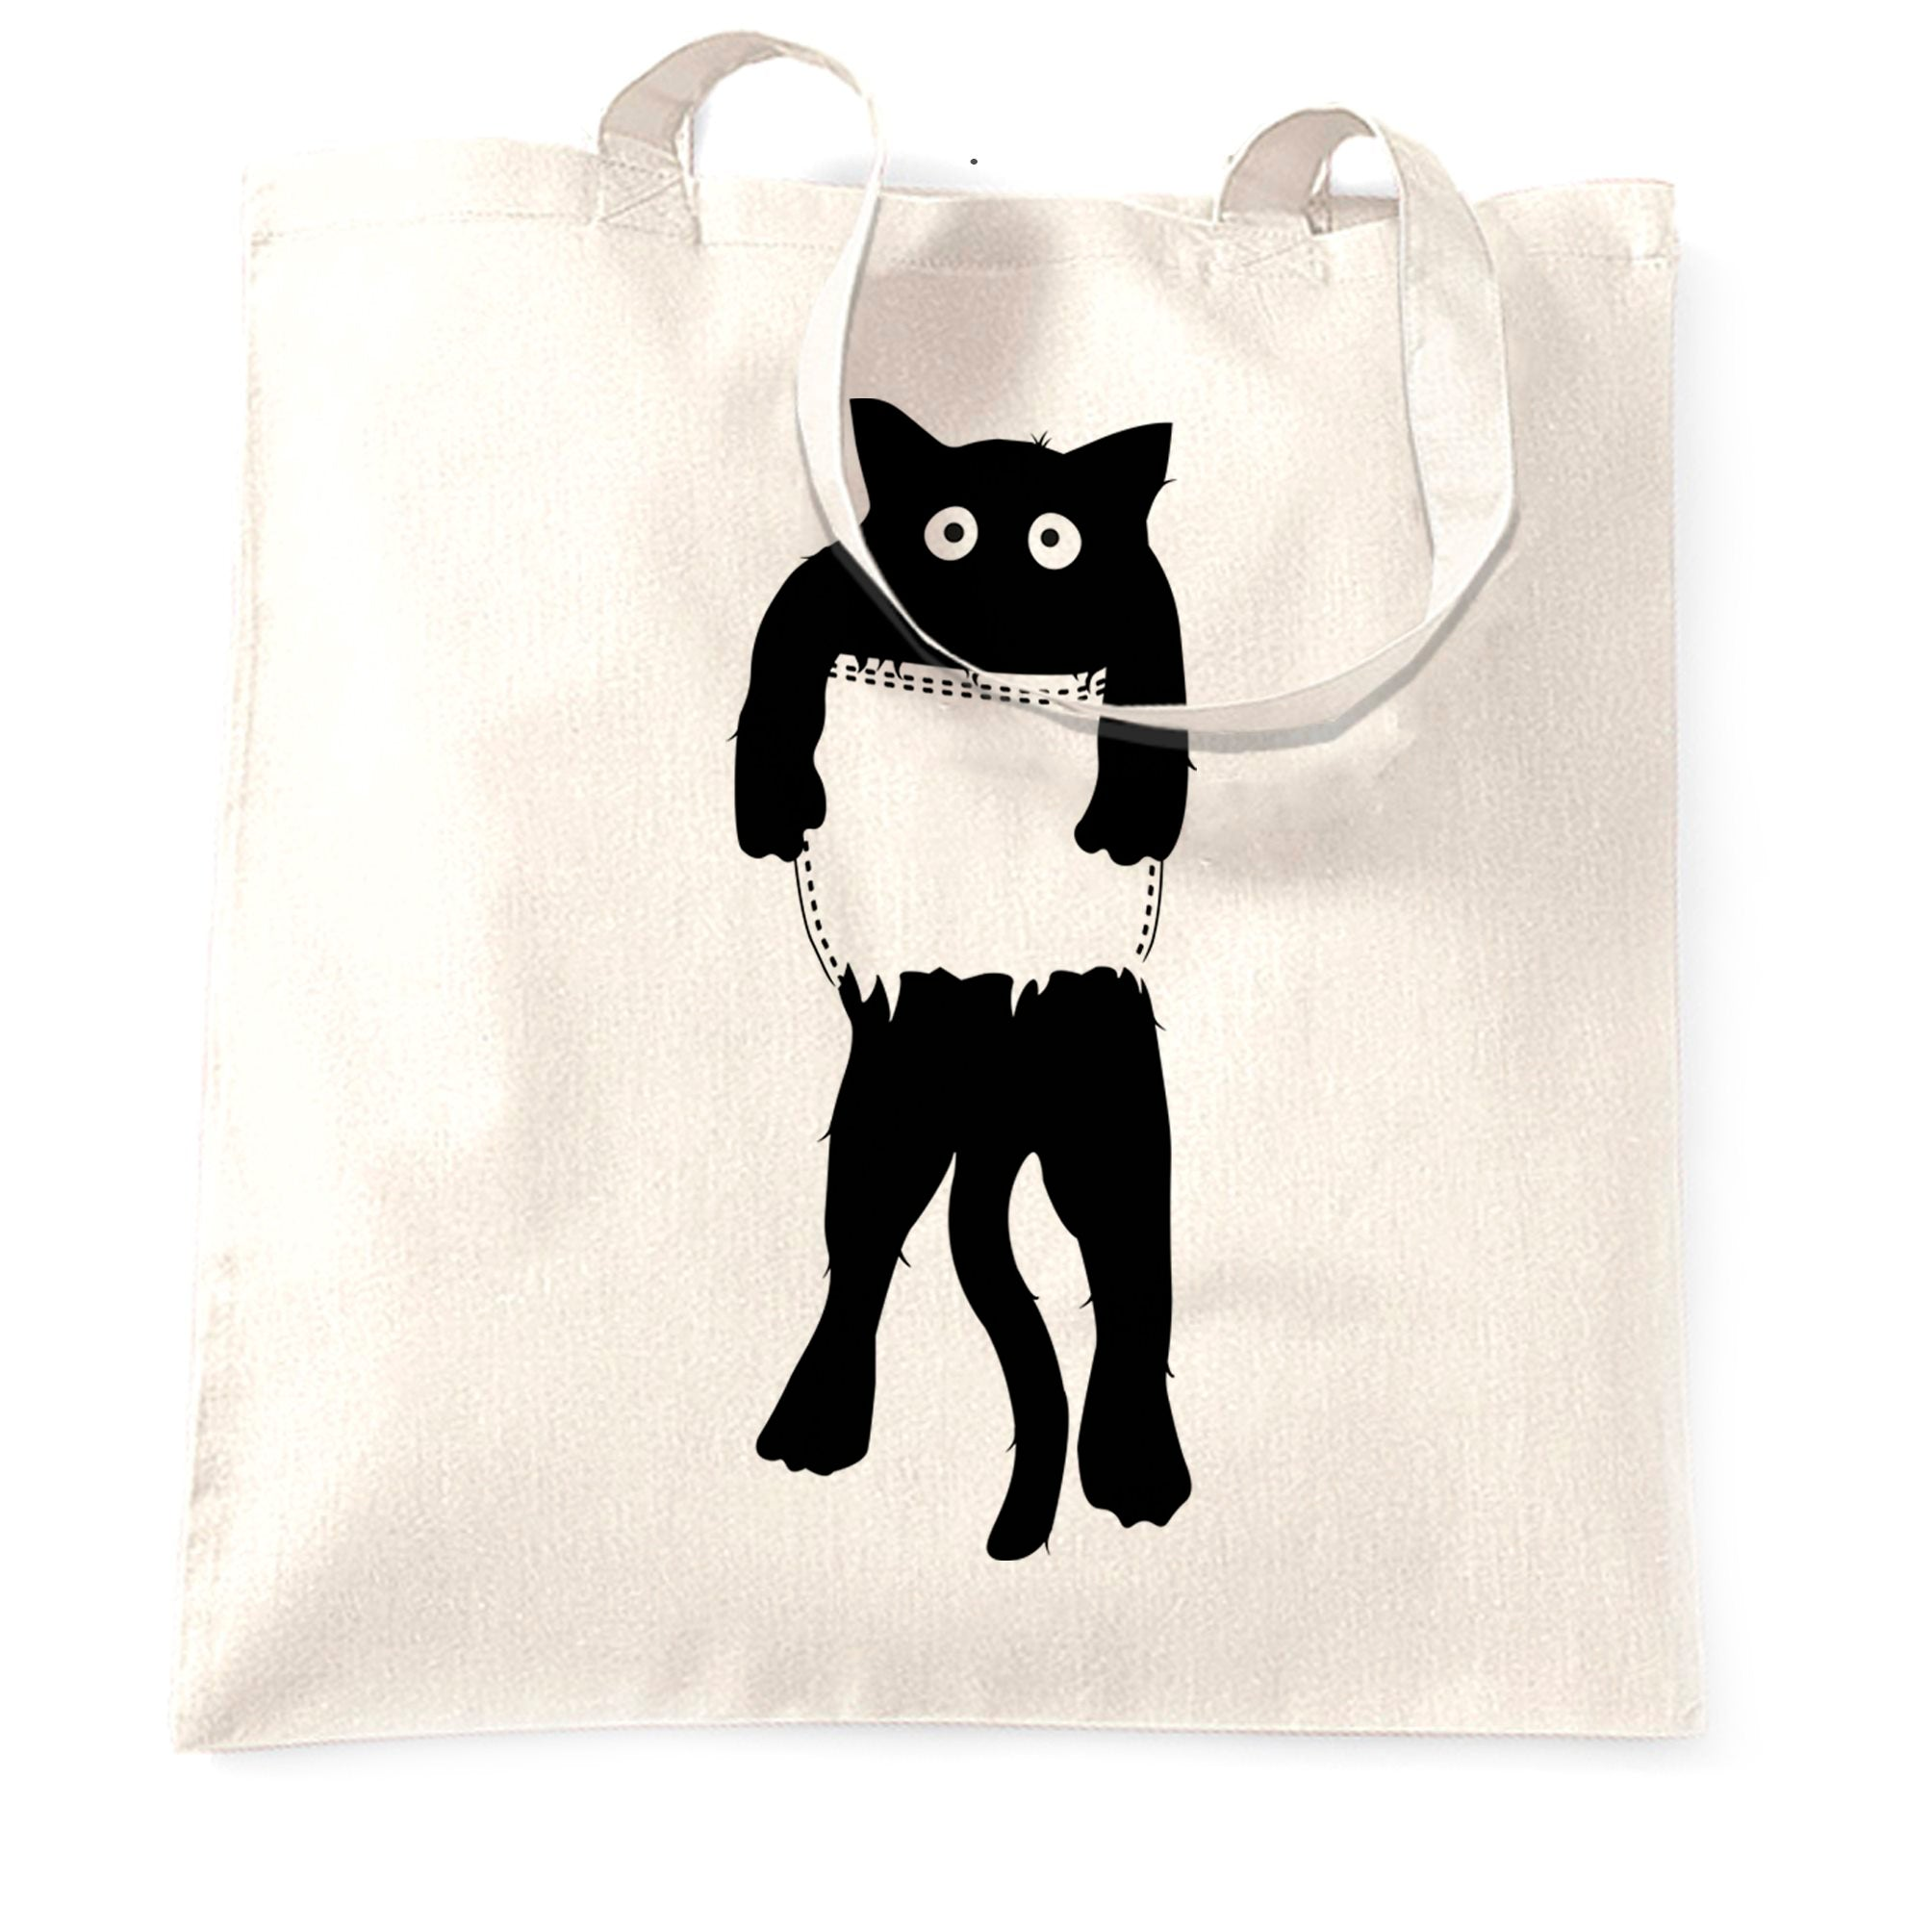 Funny Cute Cat Tote Bag Black Kitten in Pocket